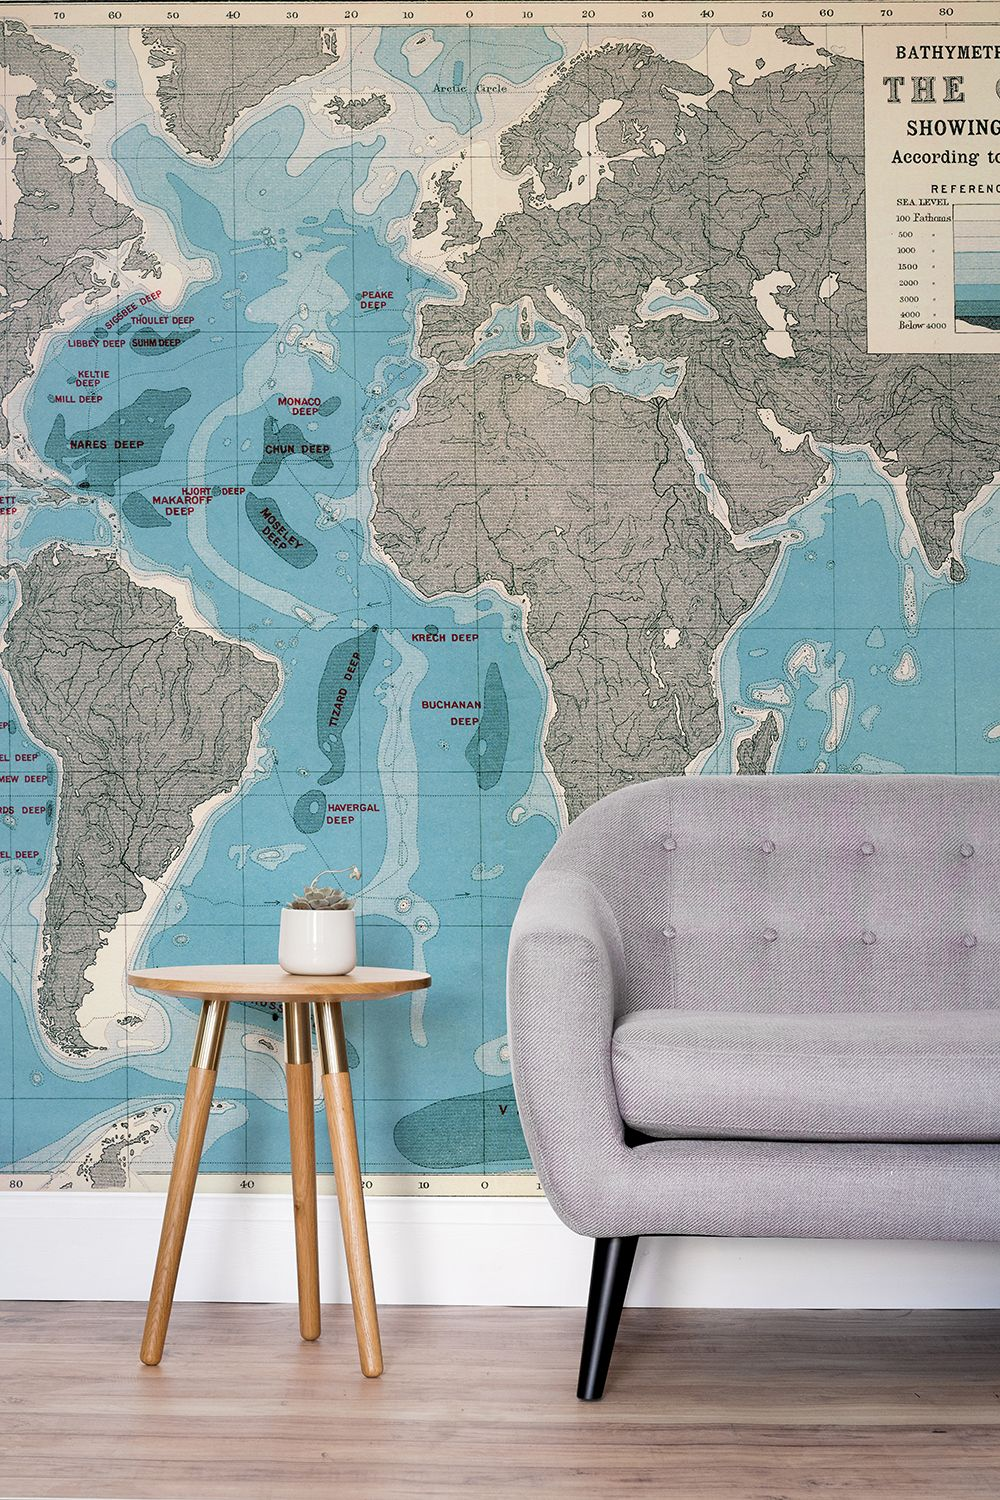 Ocean depths world map wall mural ocean depth walls and ceiling this map depicts the worlds ocean depths a detailed and beautiful mural for any home gumiabroncs Image collections